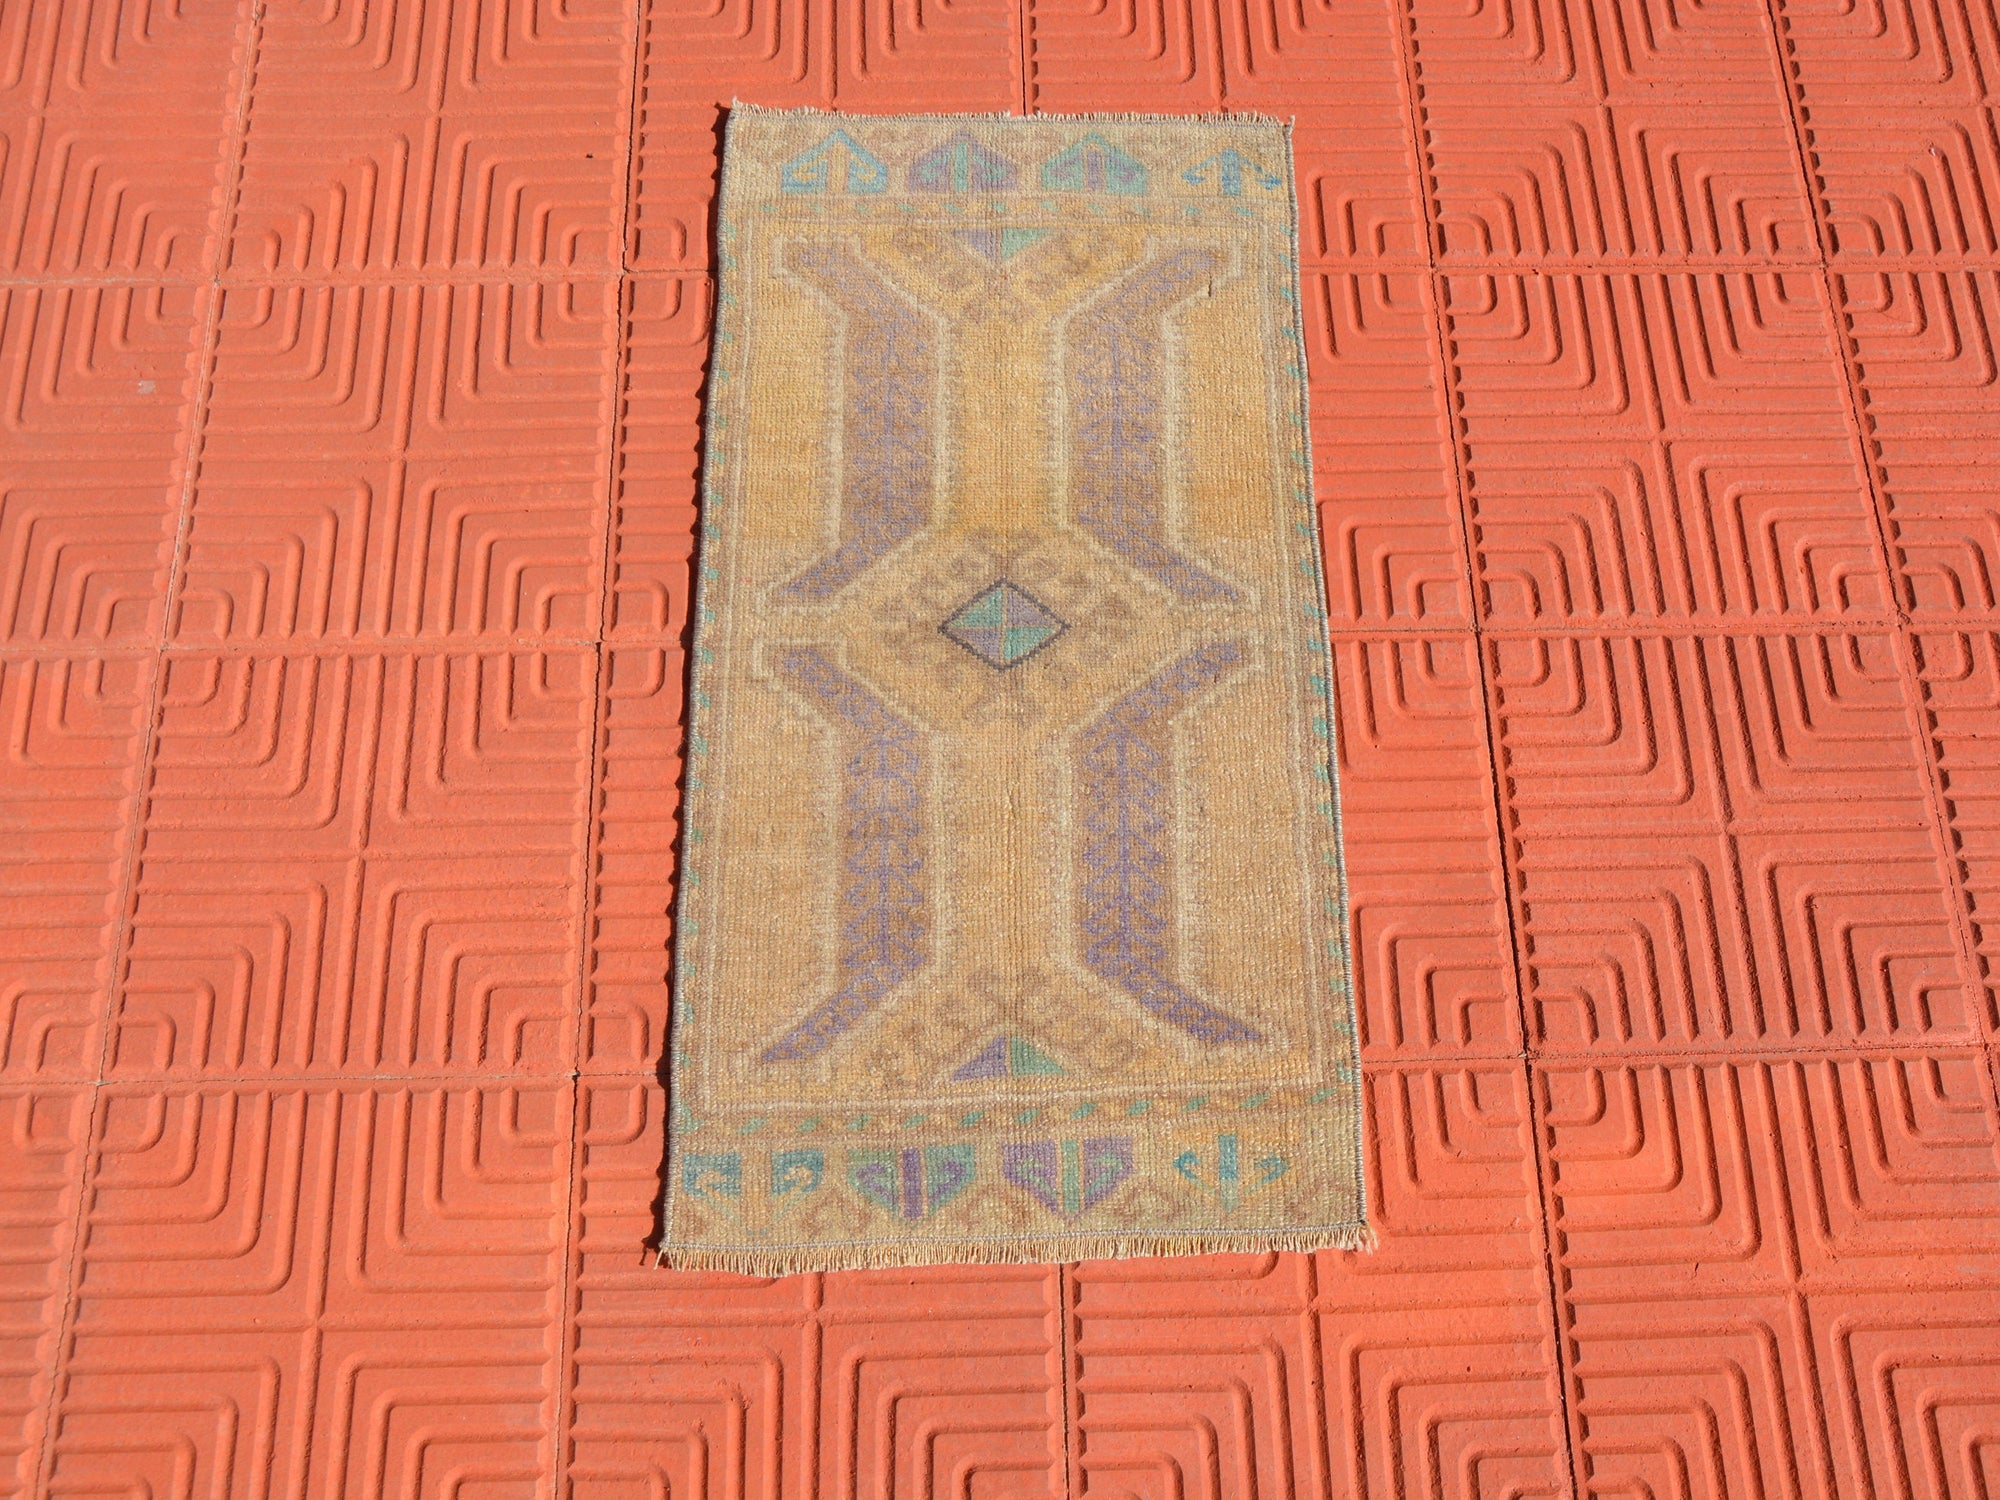 Turkish Rug,Moroccan Rug, Antique Rug,  Hand Knotted Rug, Turkish Rug Mat, Oushak Rug, Vintage Turkish Rug,   1.4 x 2.7 Feet AG1614